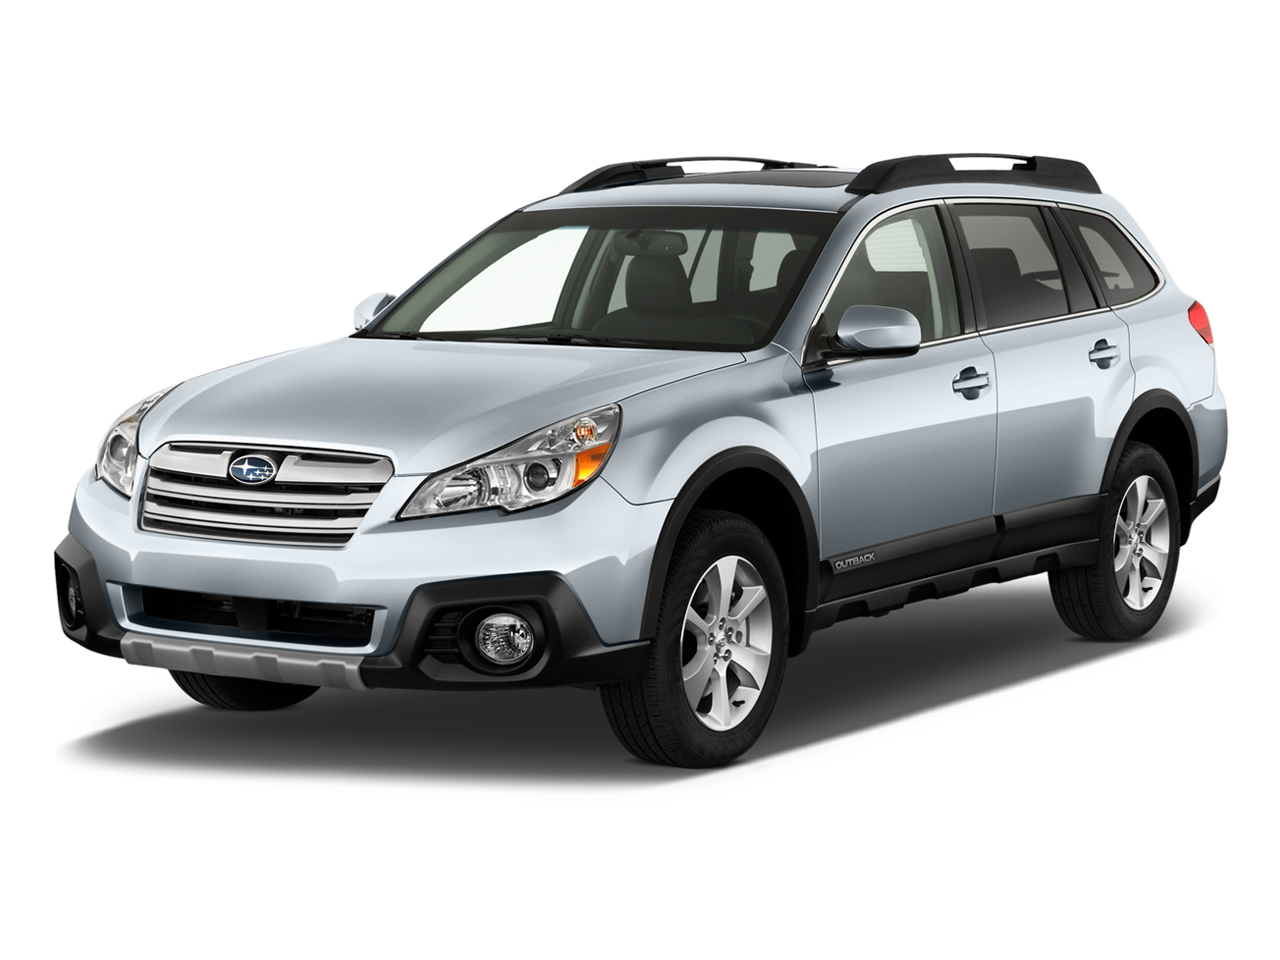 new and used subaru outback prices photos reviews specs the car connection. Black Bedroom Furniture Sets. Home Design Ideas